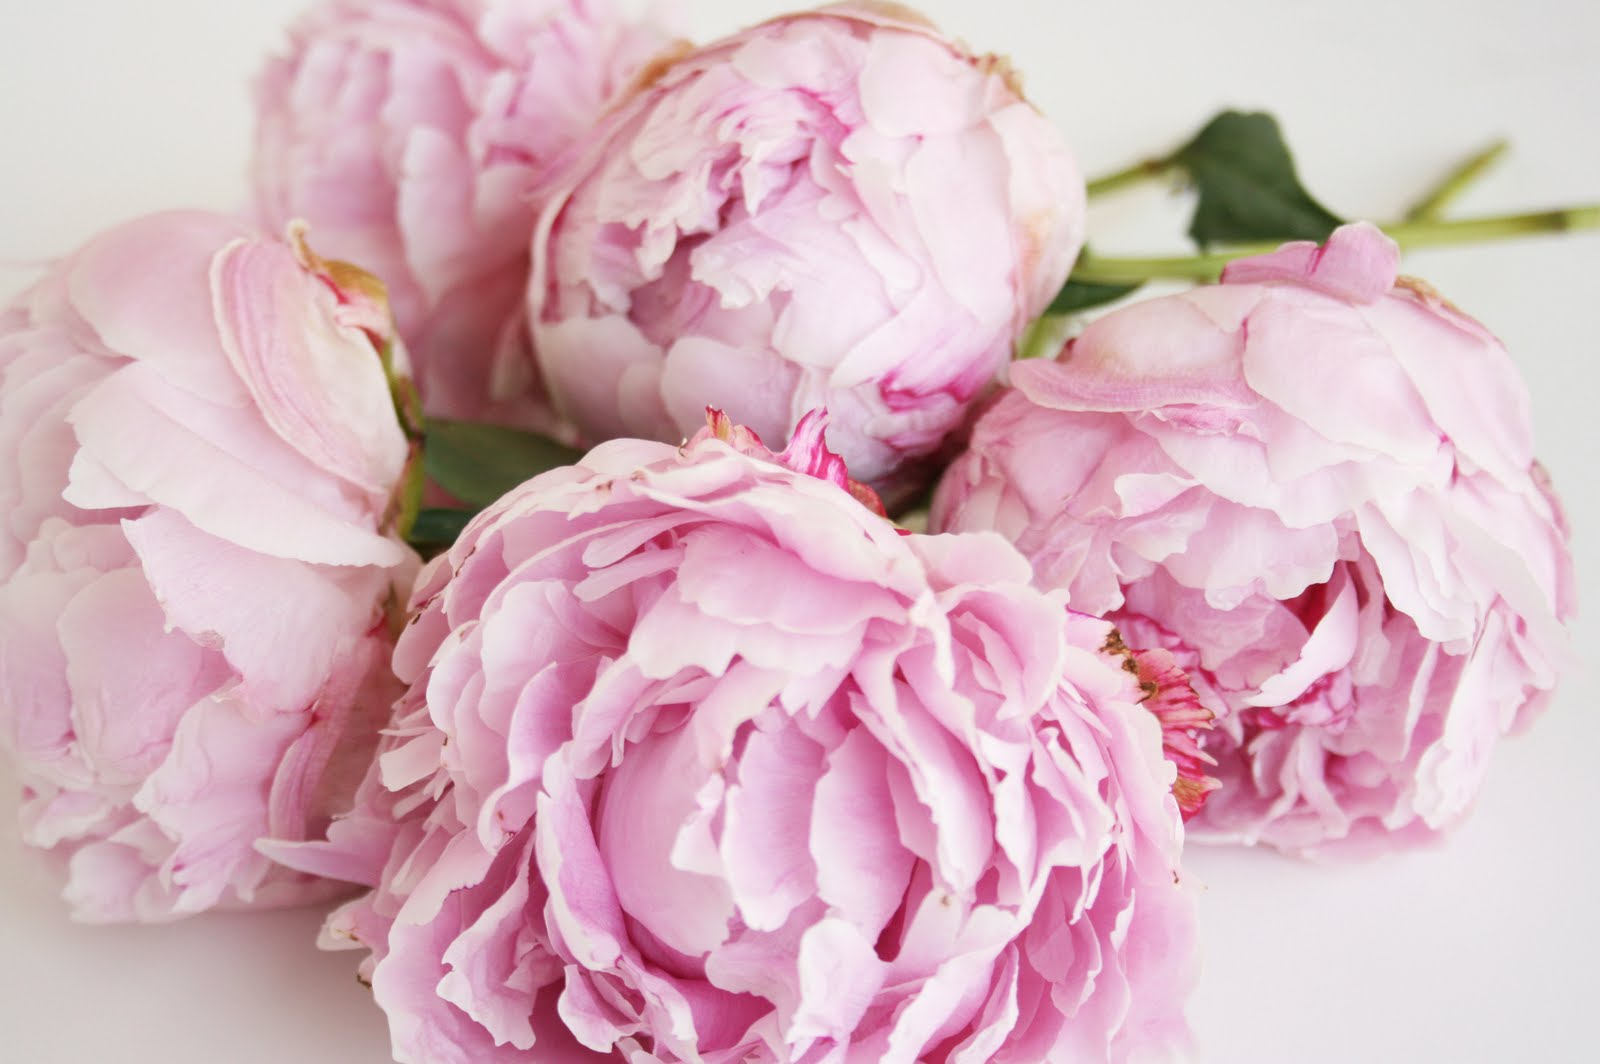 ... ever get a huge bouquet of peonies like the one above!!! Heavenly